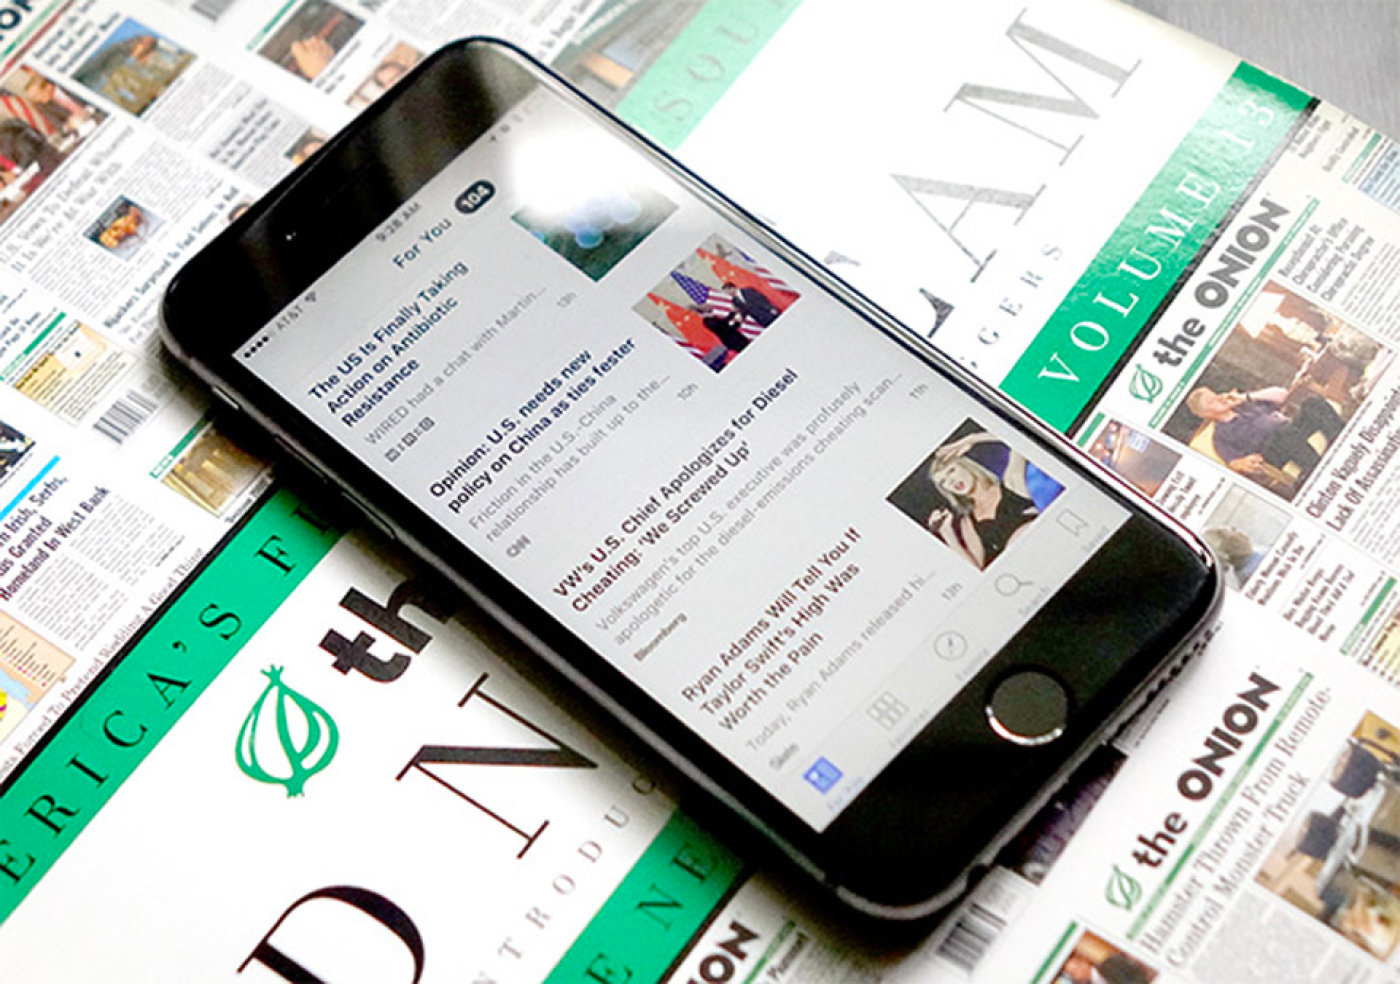 Apple's news app is making ads look more like normal articles